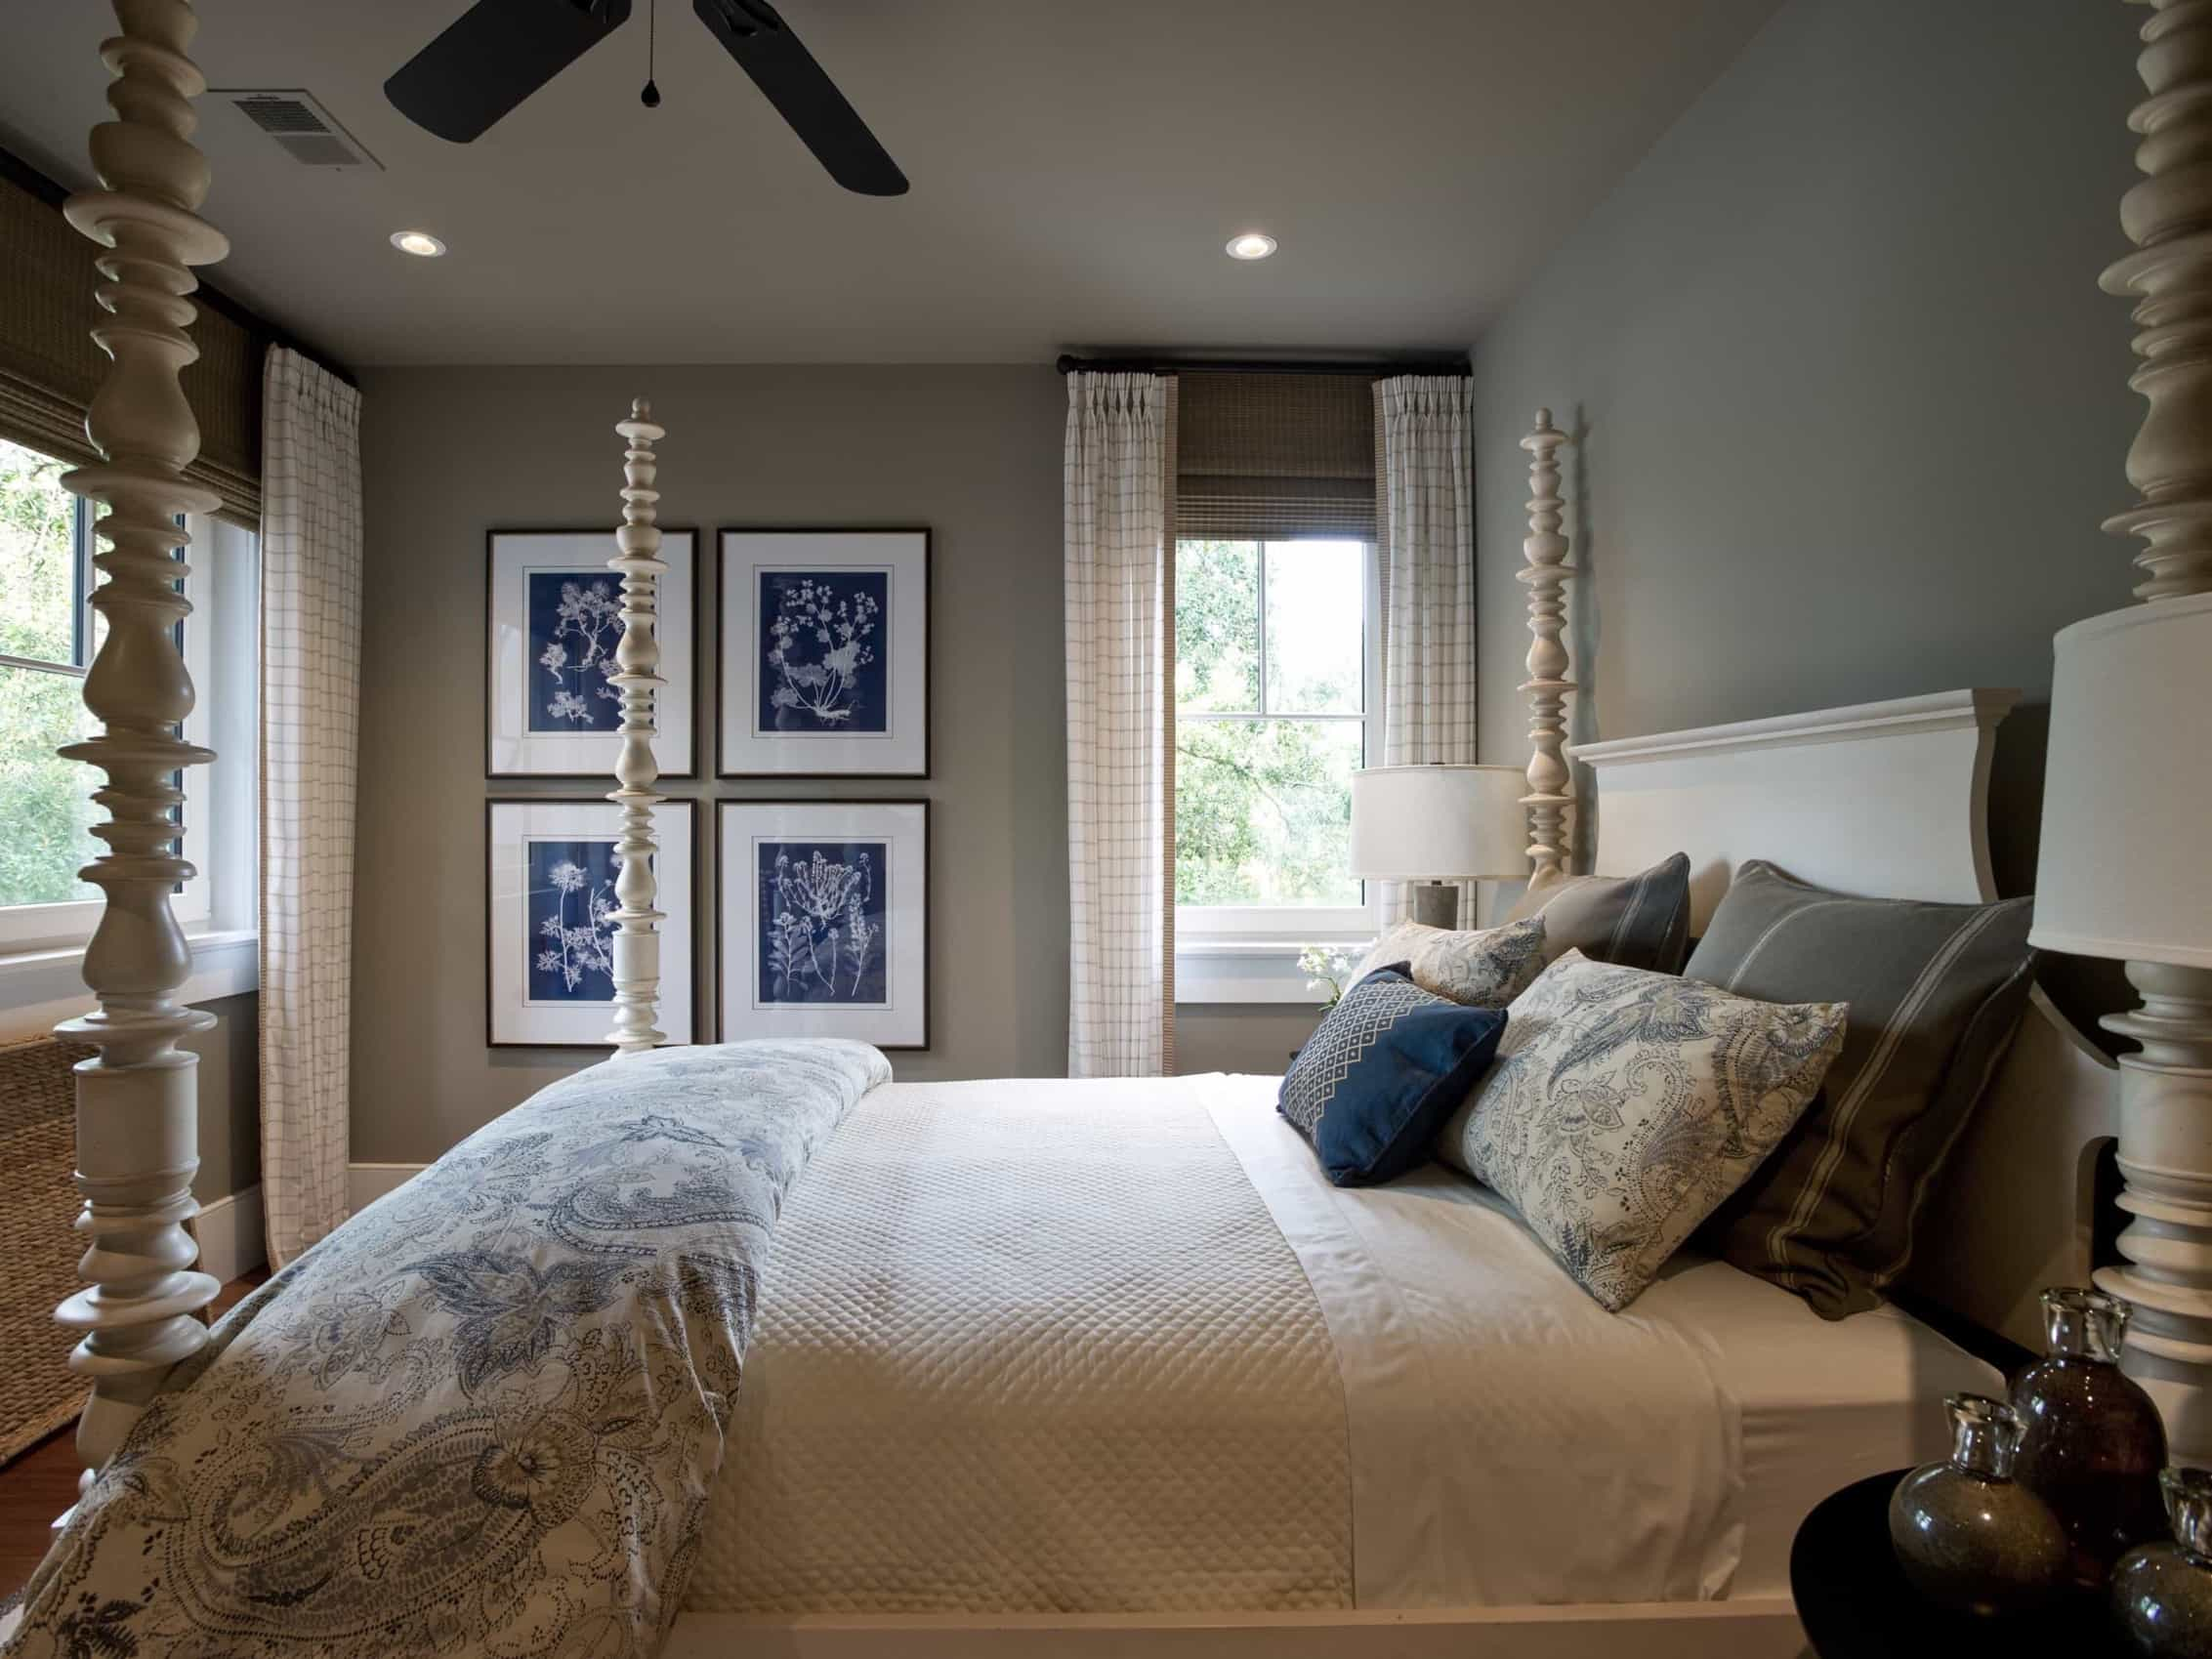 Featured Image of Guest Bedroom With Indigo Botanical Artwork